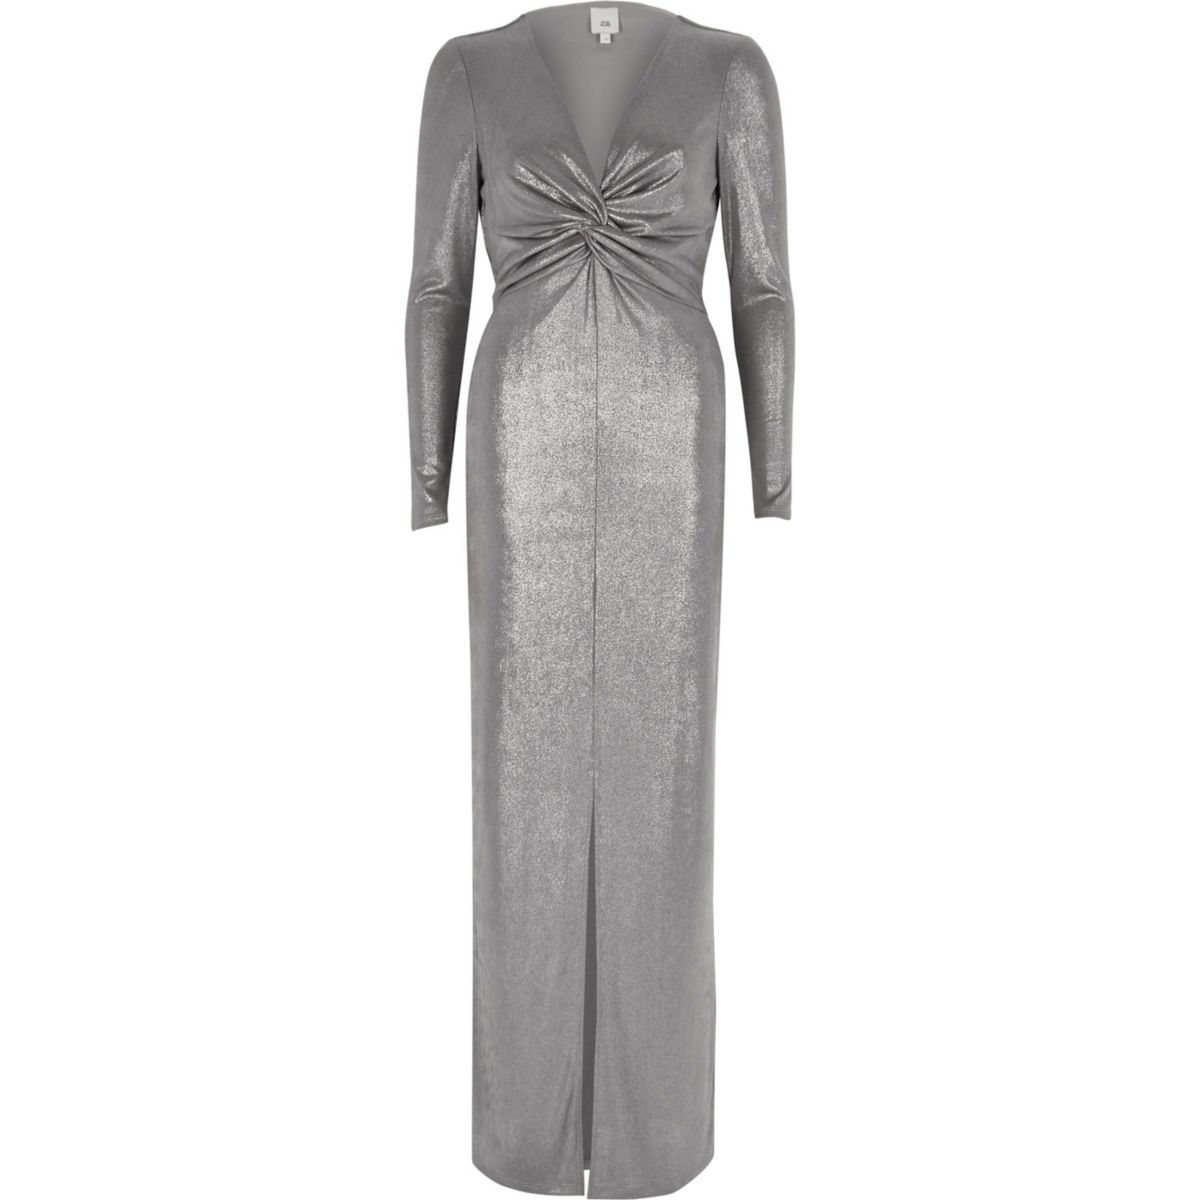 Silver metallic knot front bodycon maxi dress